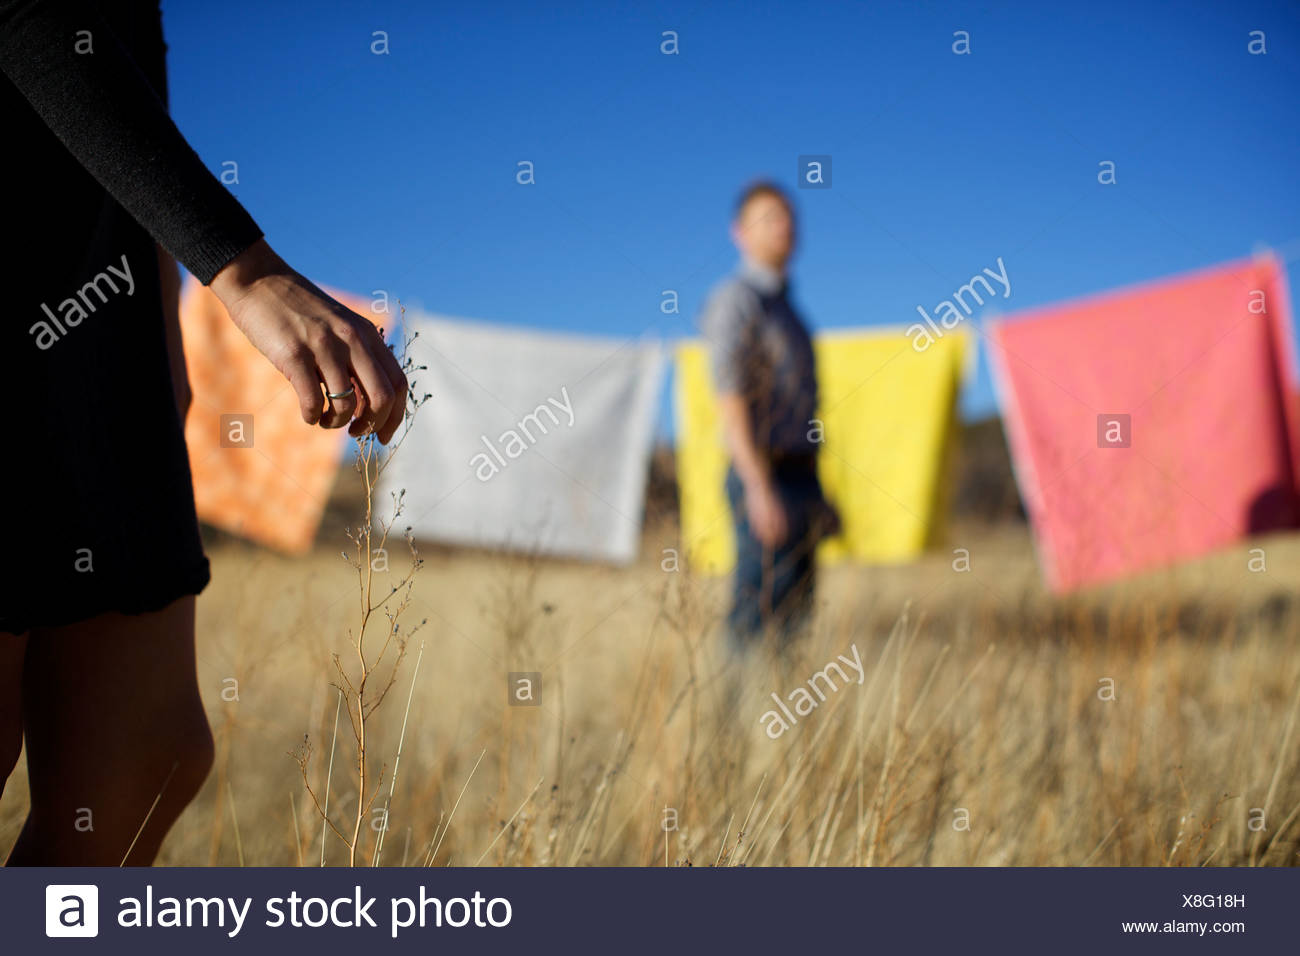 Female touches a blade of dry grass while a male watches her. - Stock Image